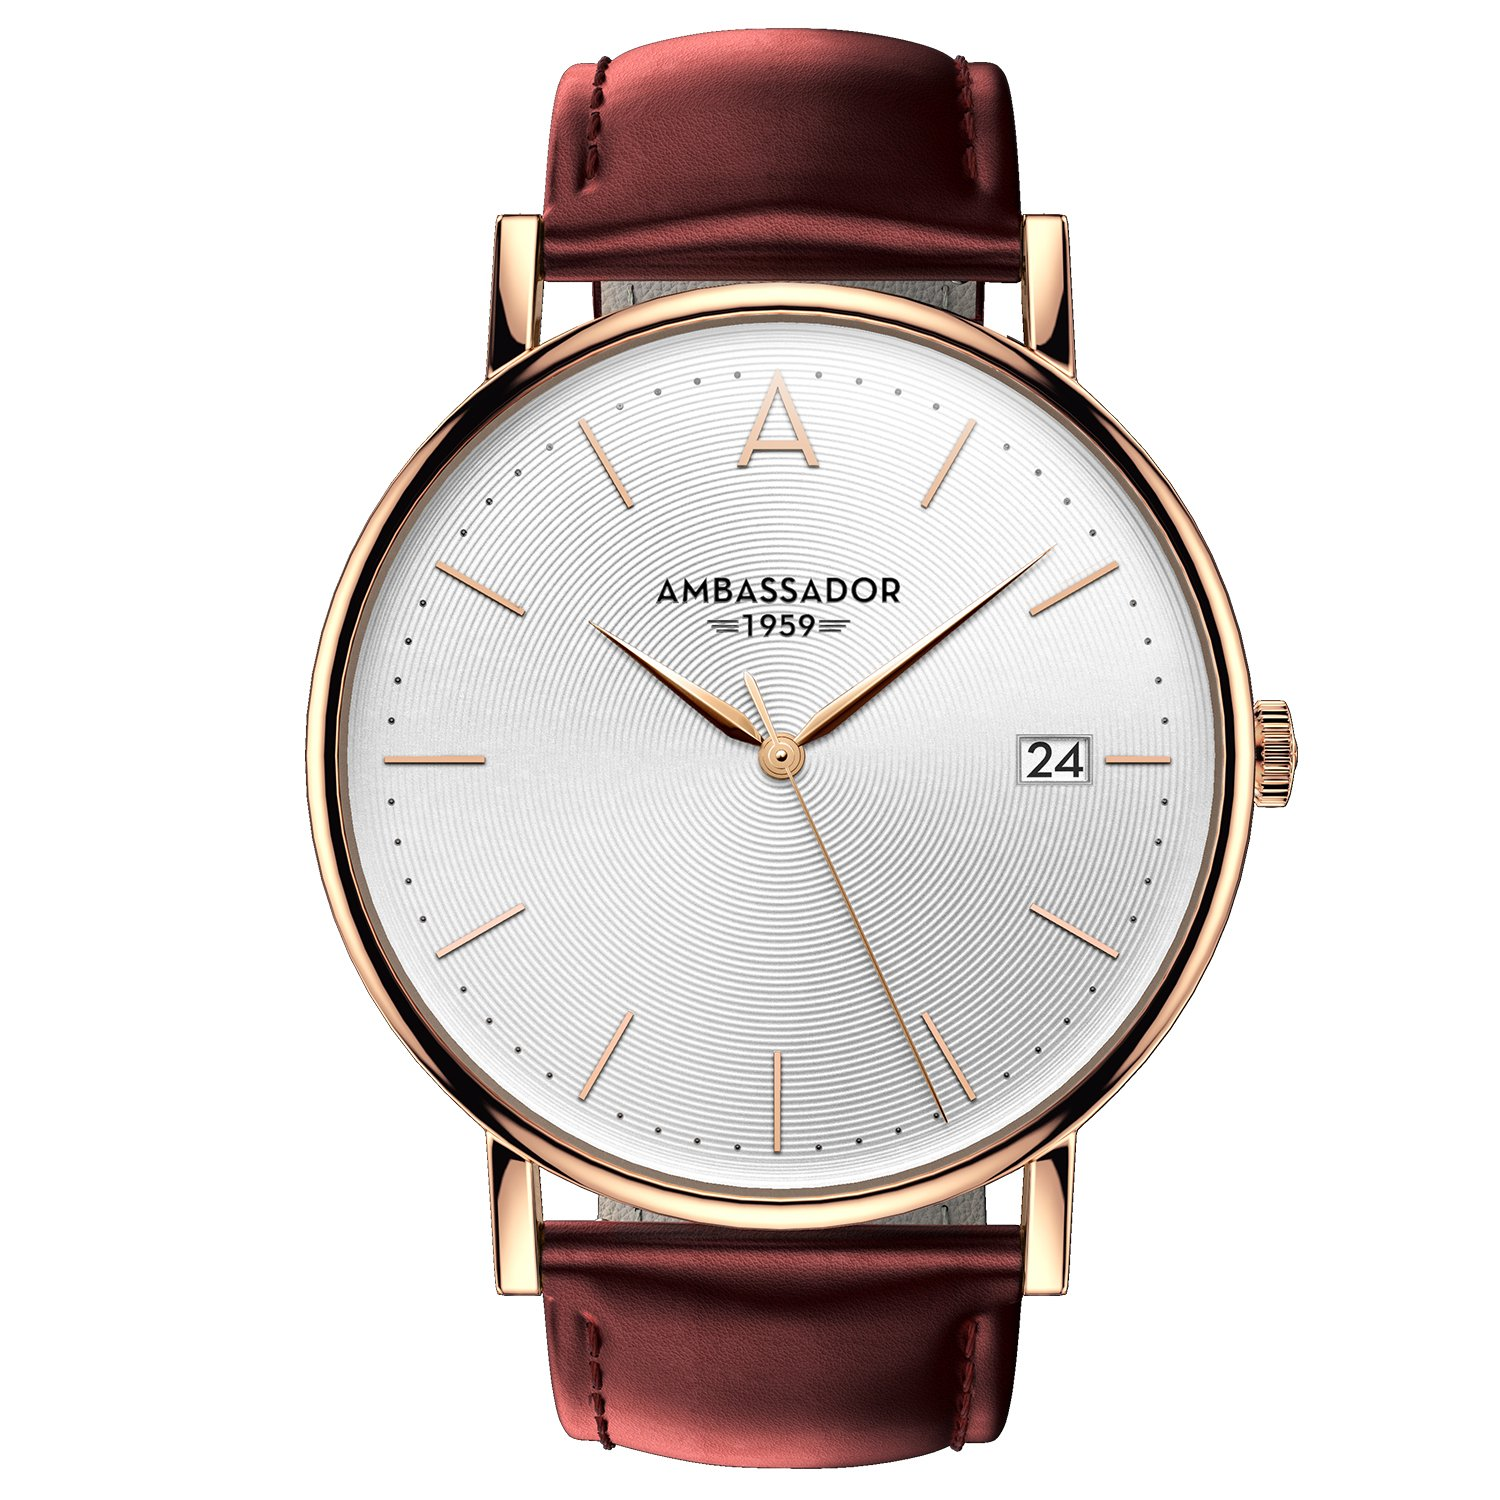 Ambassador Luxury Watch for Men - Heritage 1959 Gold Case with Burgundy Leather Strap with Swiss Quality